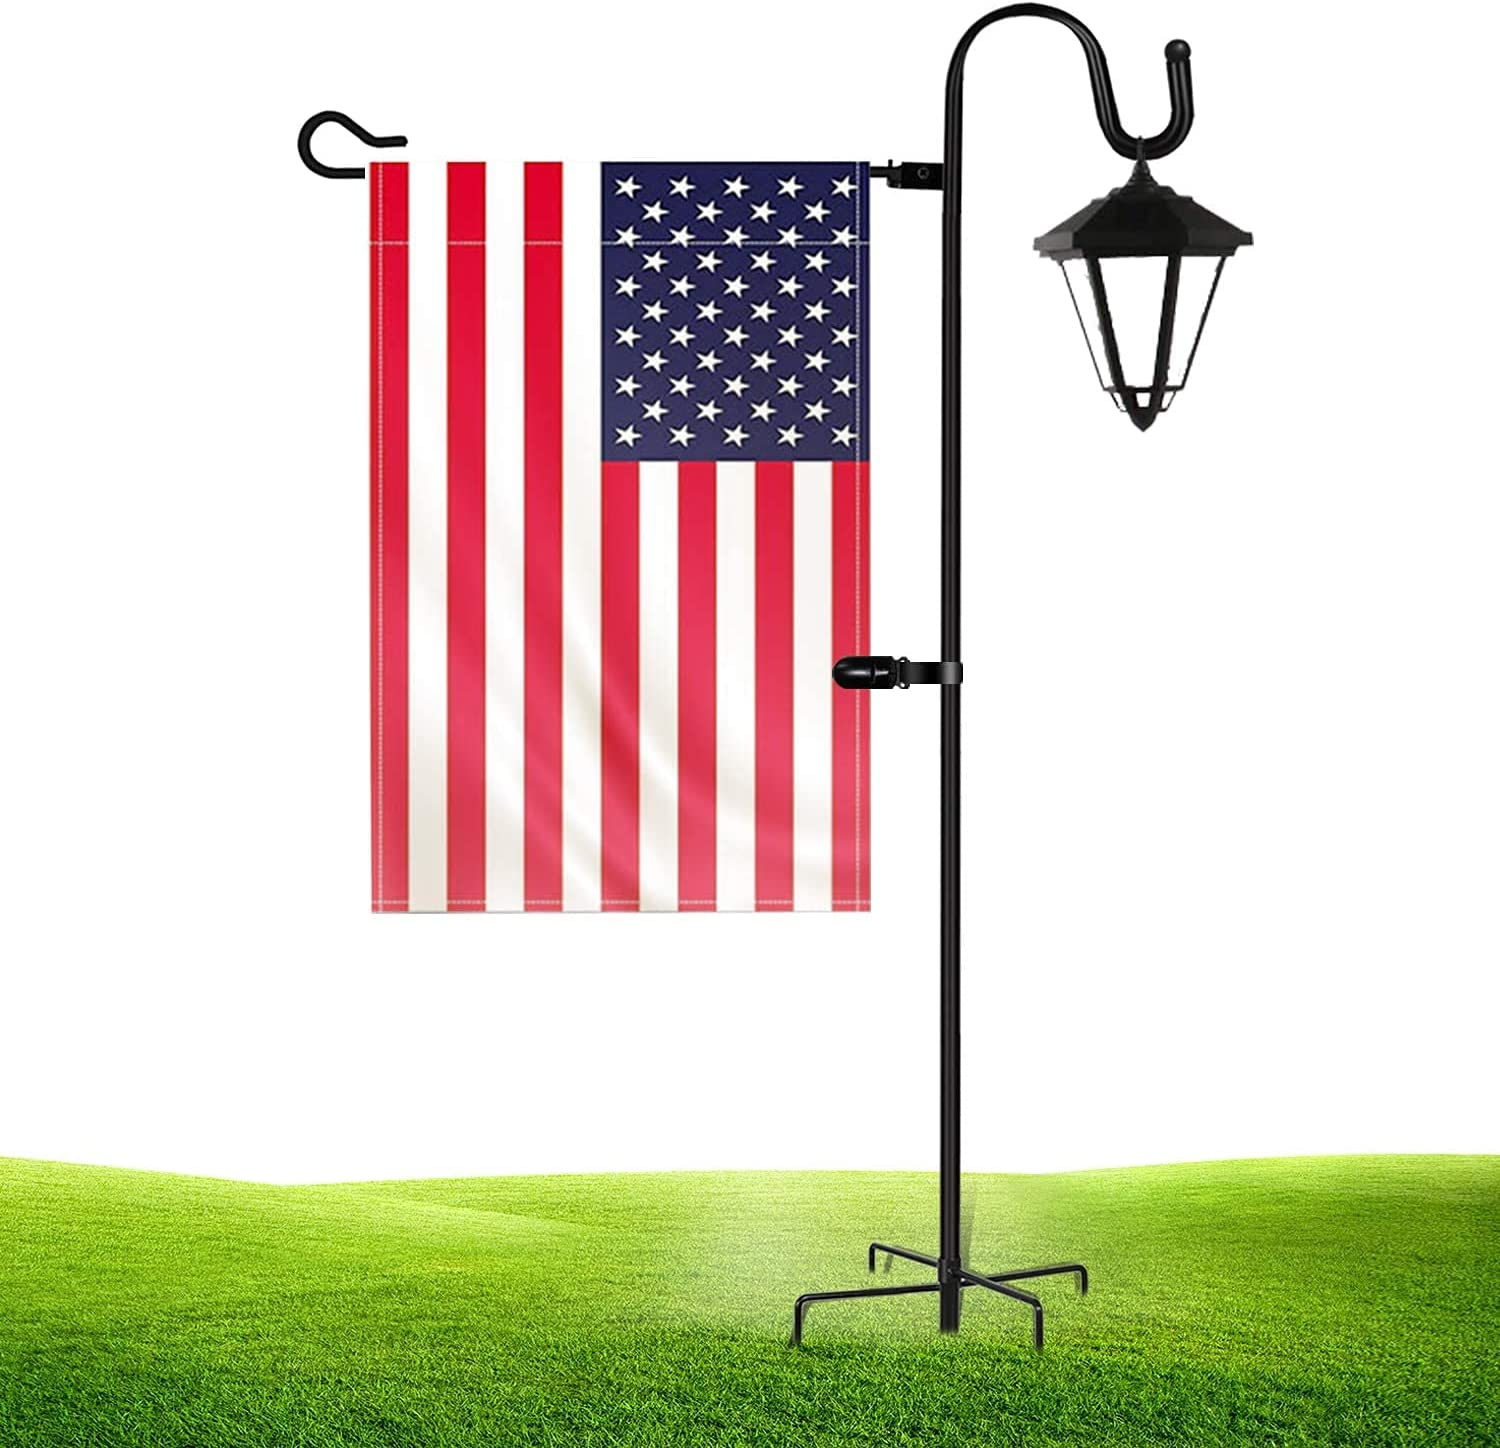 JOYSEUS Garden Flag Holder Stand and Shepherd Hook, 36 Inches with 1/2 Inch Thick Heavy Duty Garden Flag Stand, Rust Resistant Yard Flag Pole Holder for Flag, Lights and Plants(Without Solar Lights)